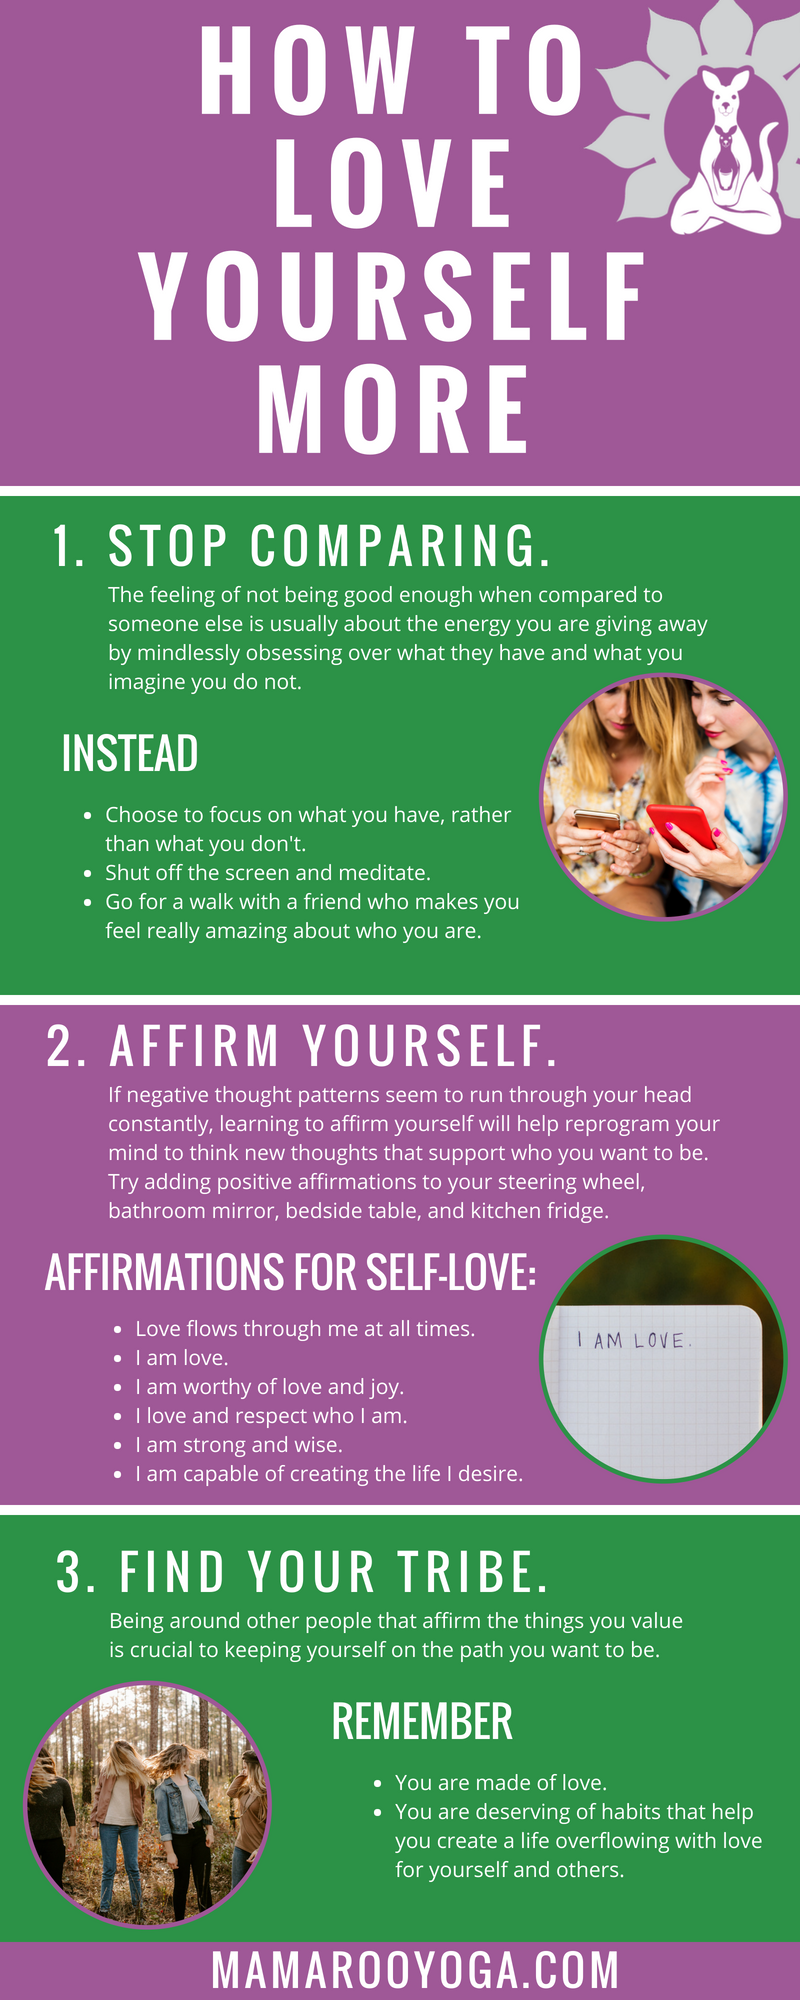 How to love yourself more graphic